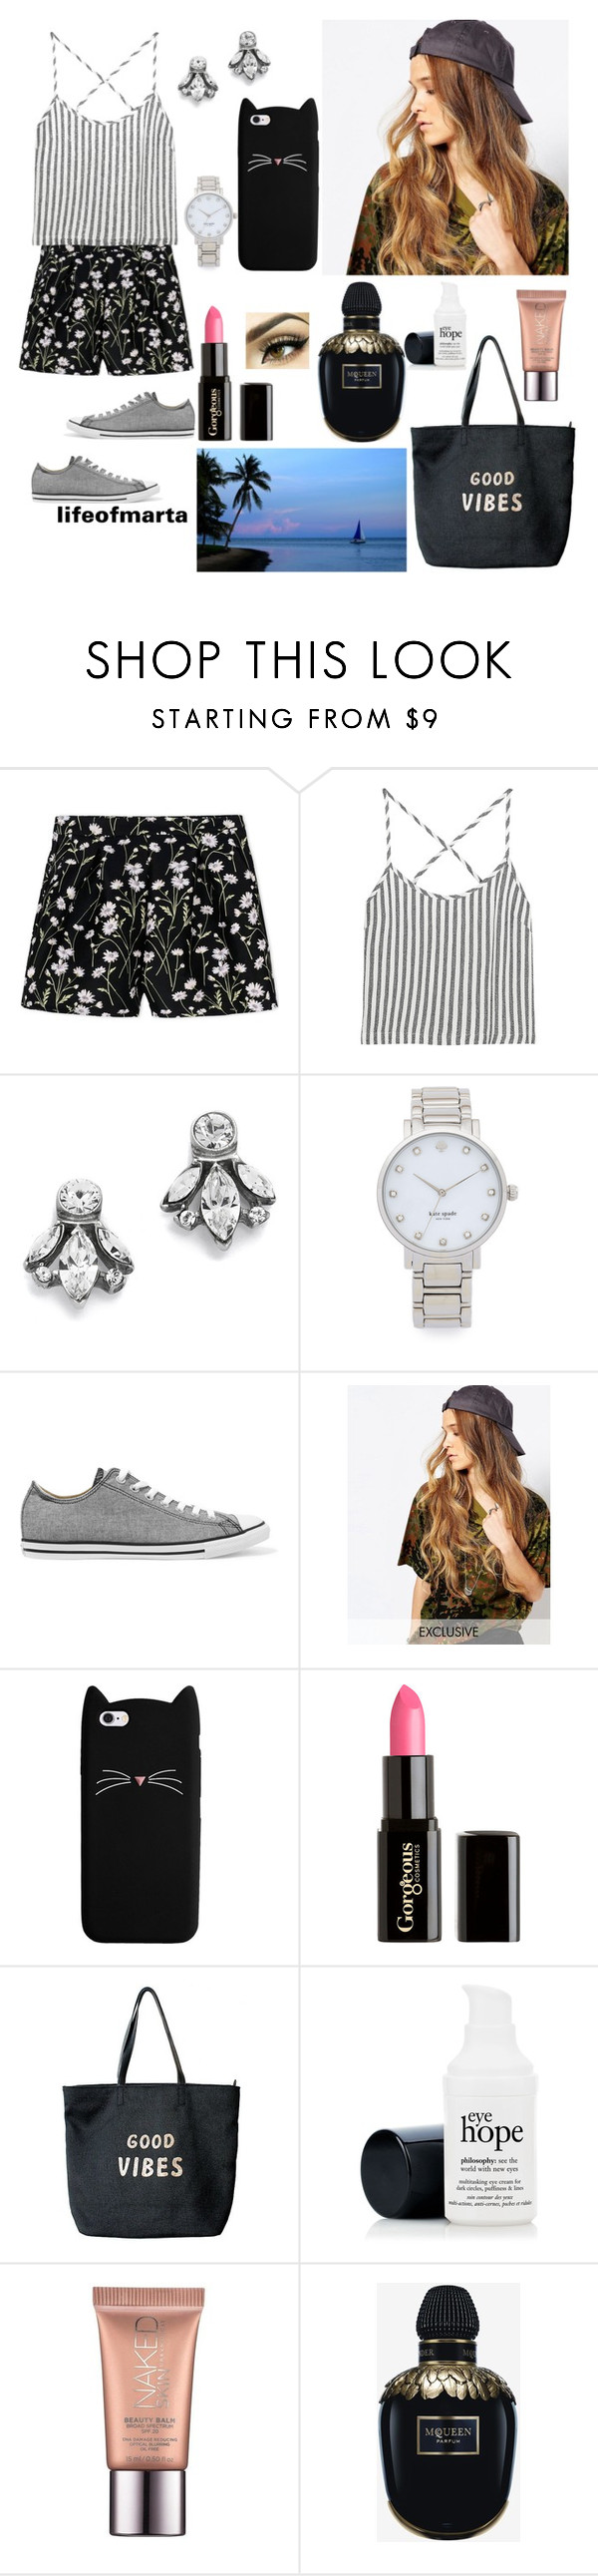 """*shrugs*"" by lifeofmarta ❤ liked on Polyvore featuring Giambattista Valli, Kain, Ben-Amun, Kate Spade, Converse, Reclaimed Vintage, Gorgeous Cosmetics, Venus, Urban Decay and Alexander McQueen"